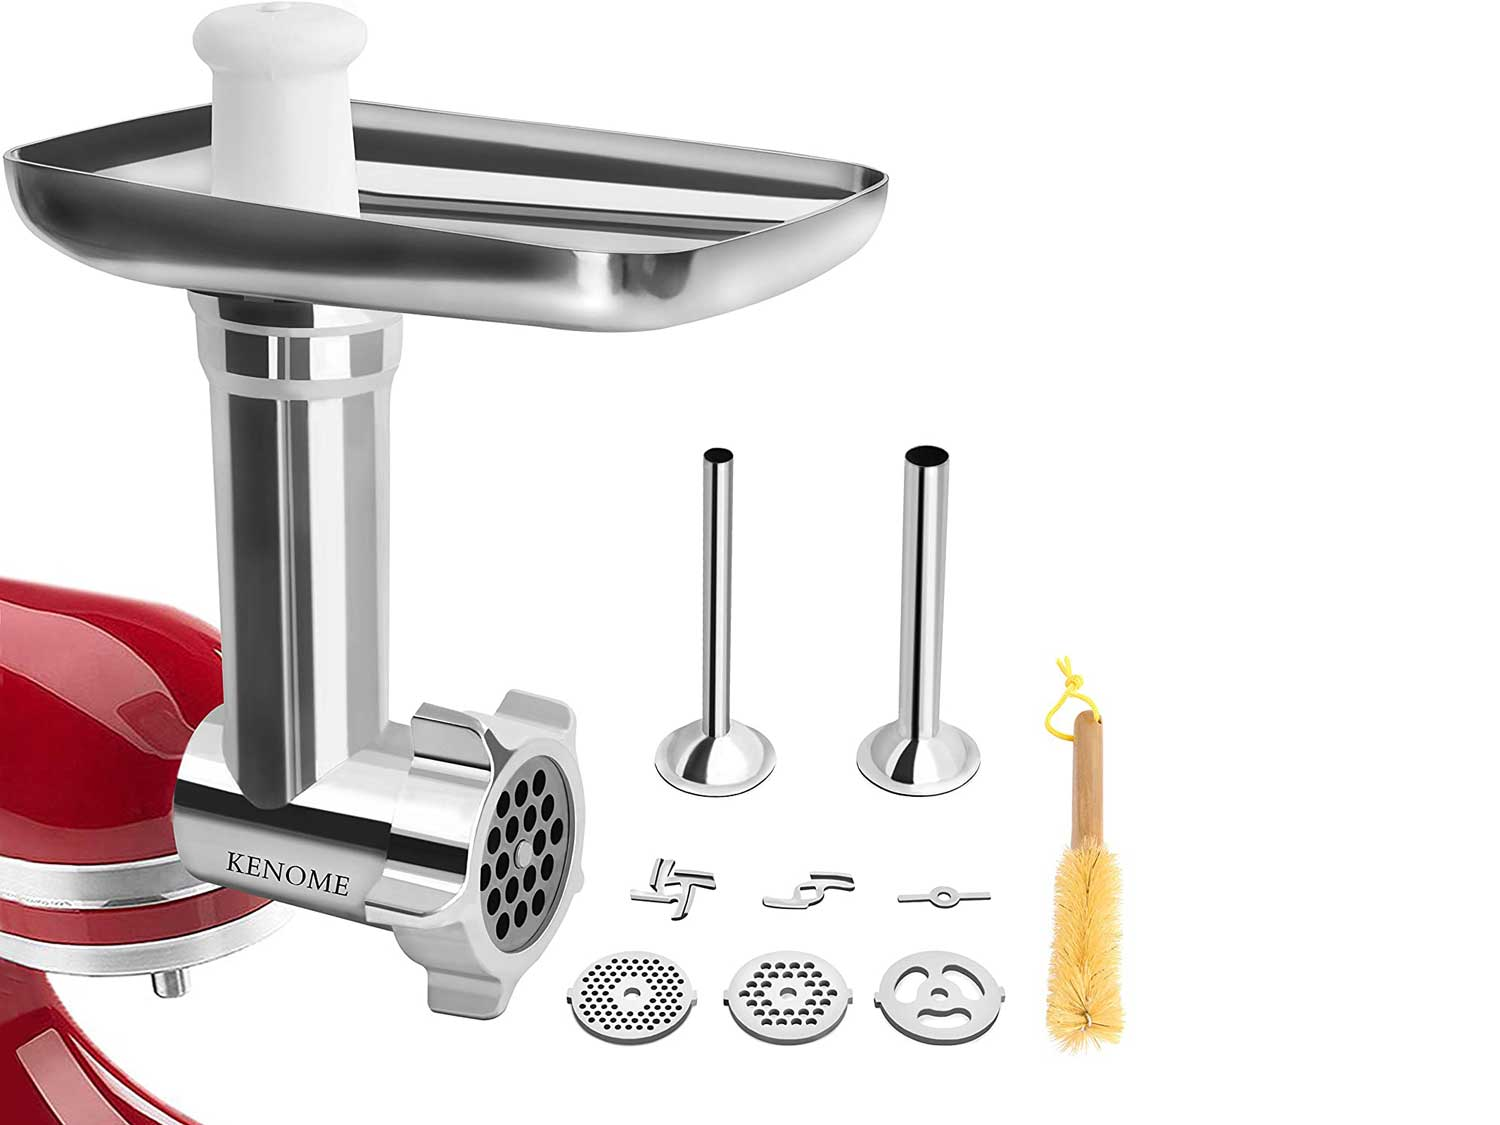 Metal Food Grinder Attachment for KitchenAid Stand Mixers Includes 2 Sausage Stuffer Tubes,Durable Meat Grinder Attachment for KitchenAid